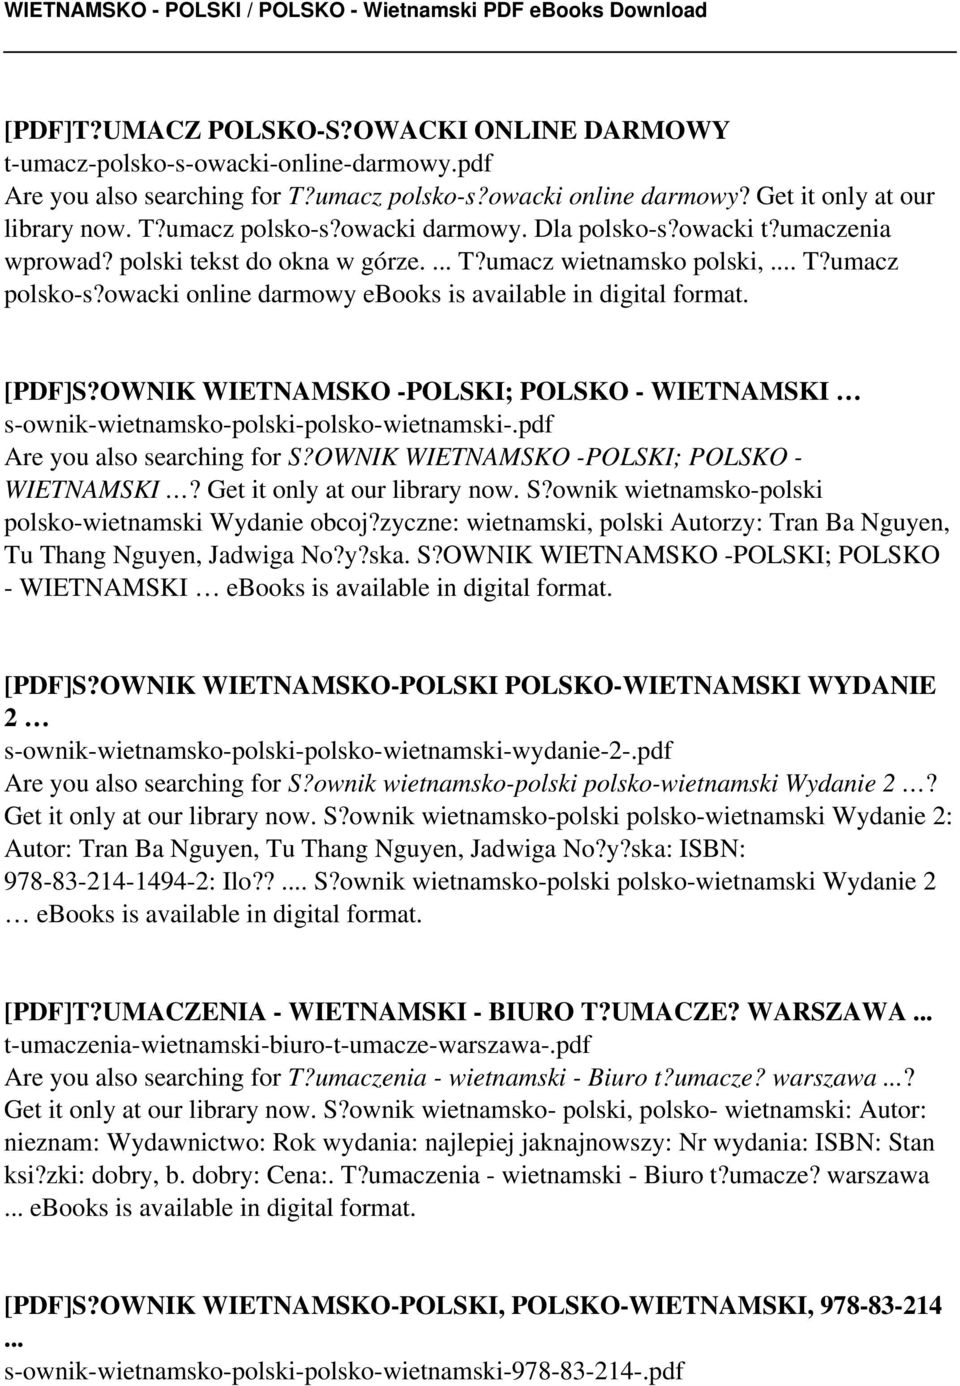 OWNIK WIETNAMSKO -POLSKI; POLSKO - WIETNAMSKI s-ownik-wietnamsko-polski-polsko-wietnamski-.pdf Are you also searching for S?OWNIK WIETNAMSKO -POLSKI; POLSKO - WIETNAMSKI? Get it only at our library now.